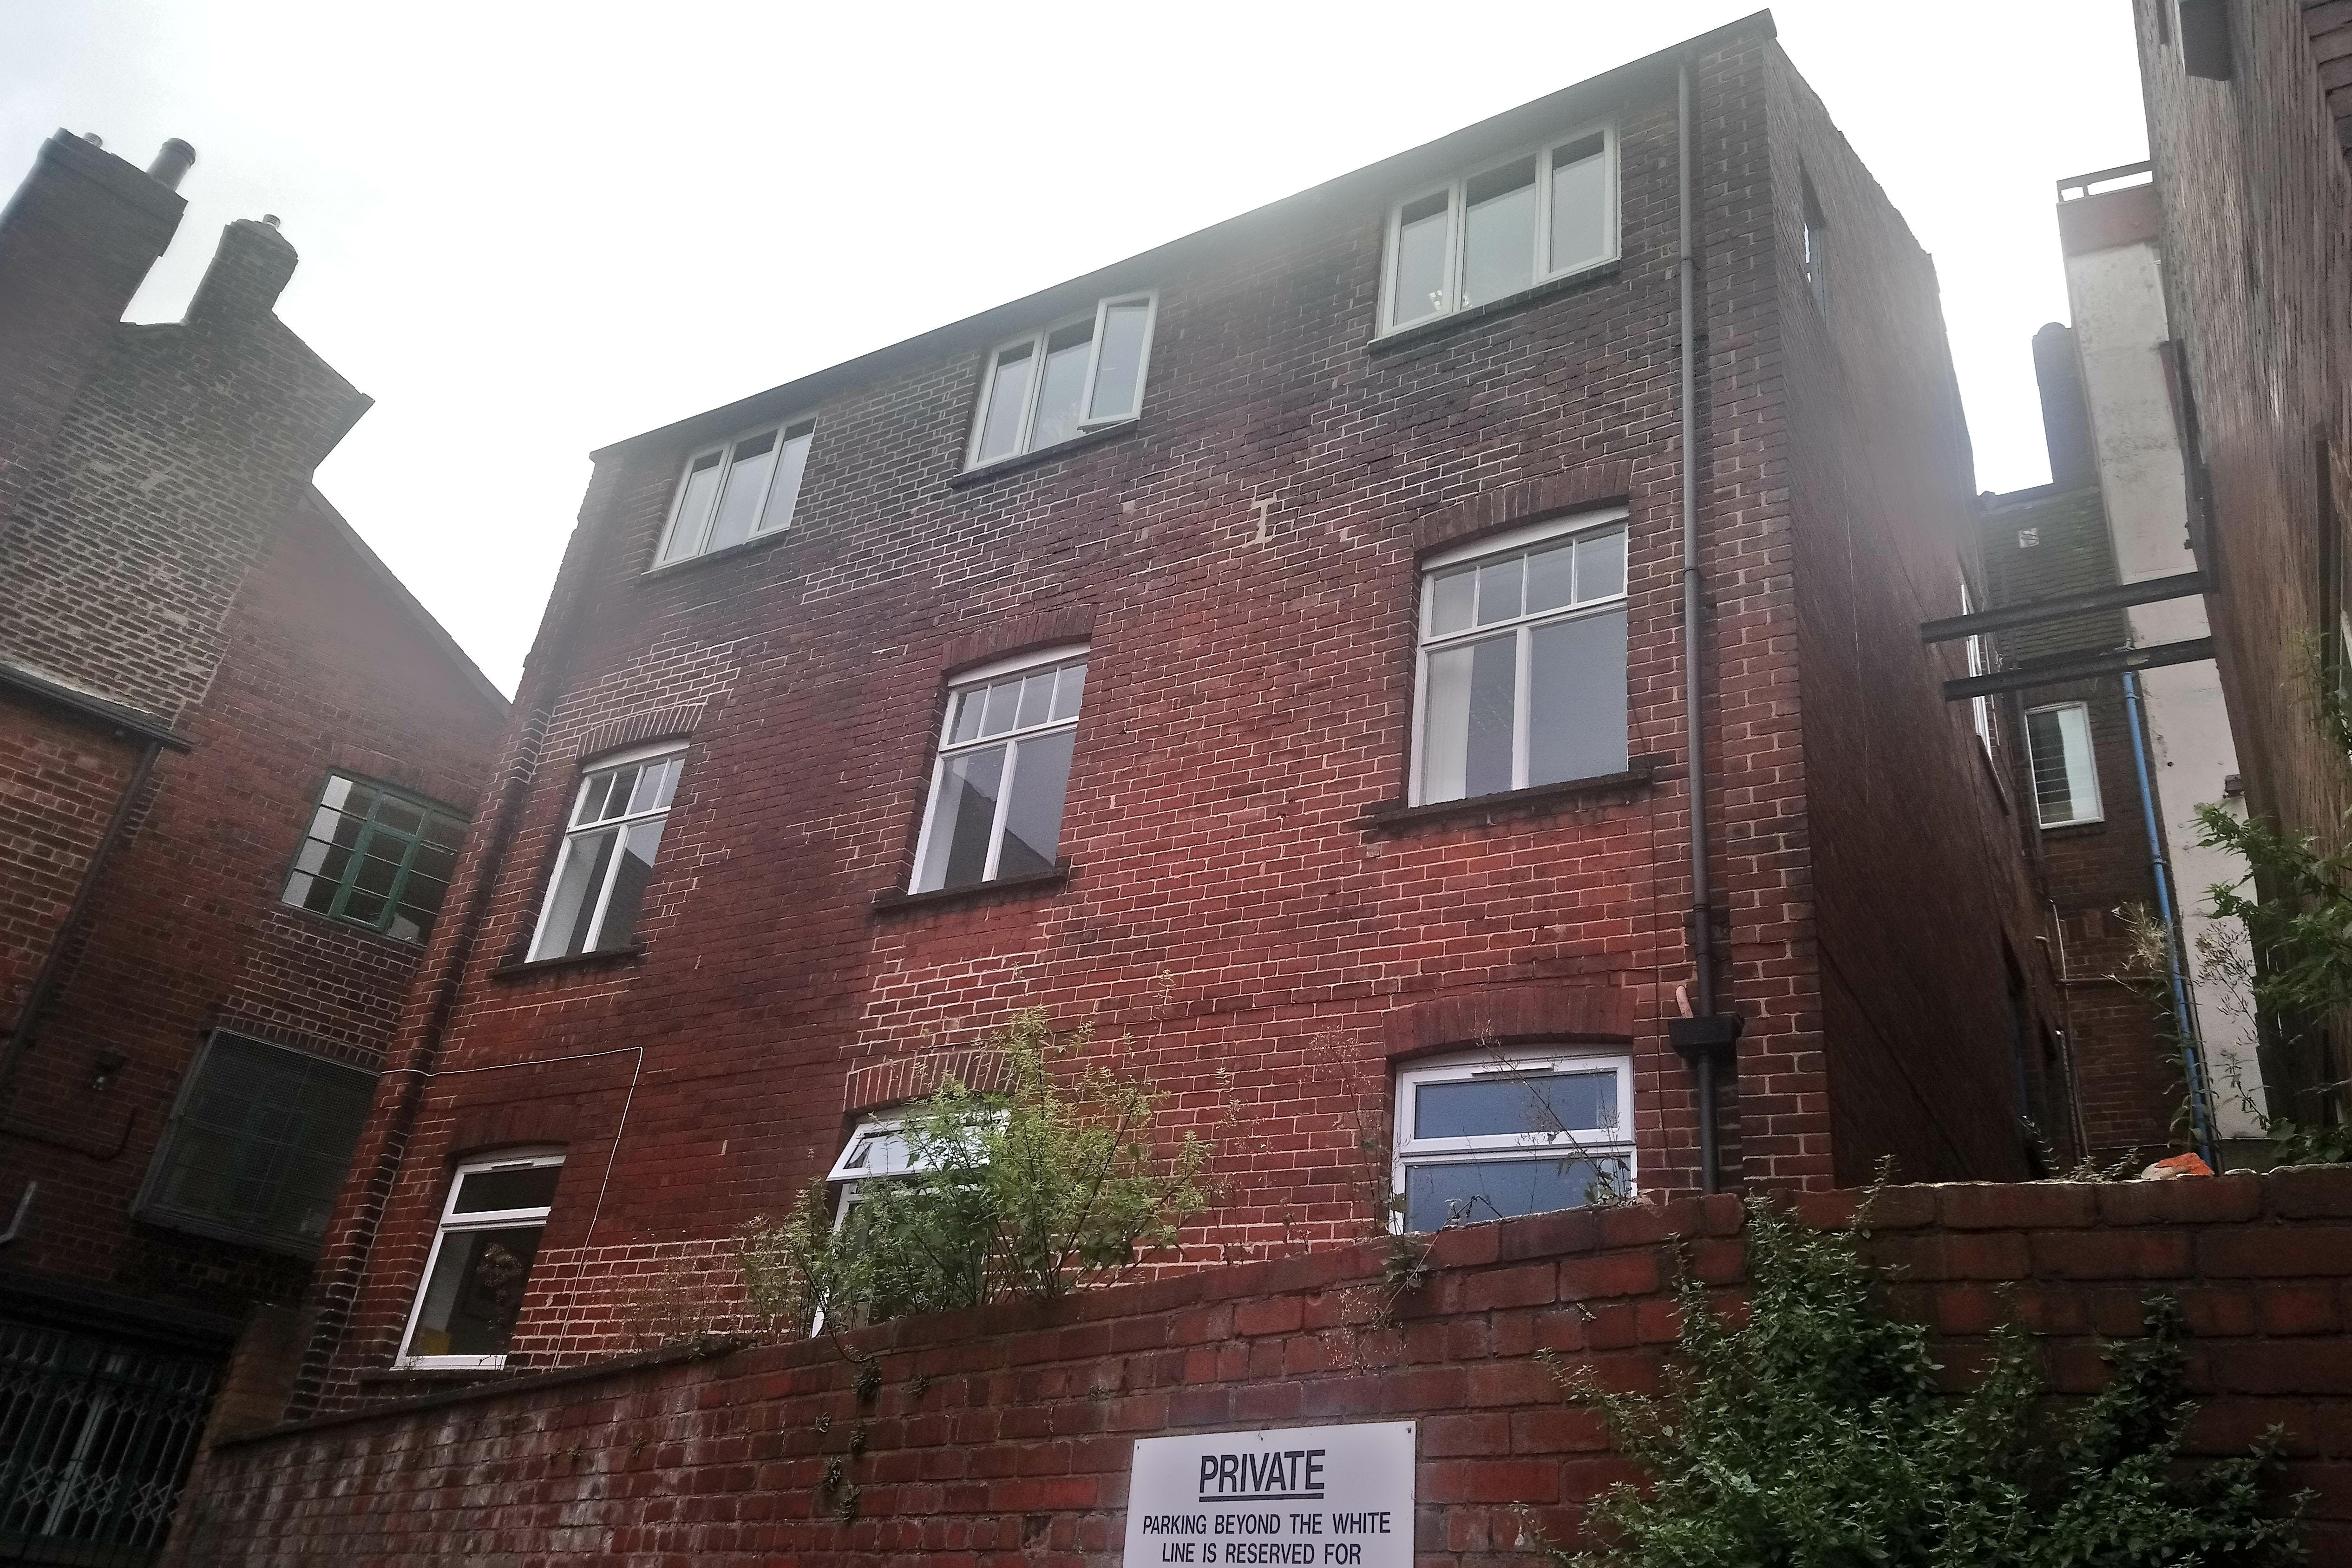 54 Campo Lane, Sheffield, Offices / Retail / Investments For Sale - DSC_4390.JPG